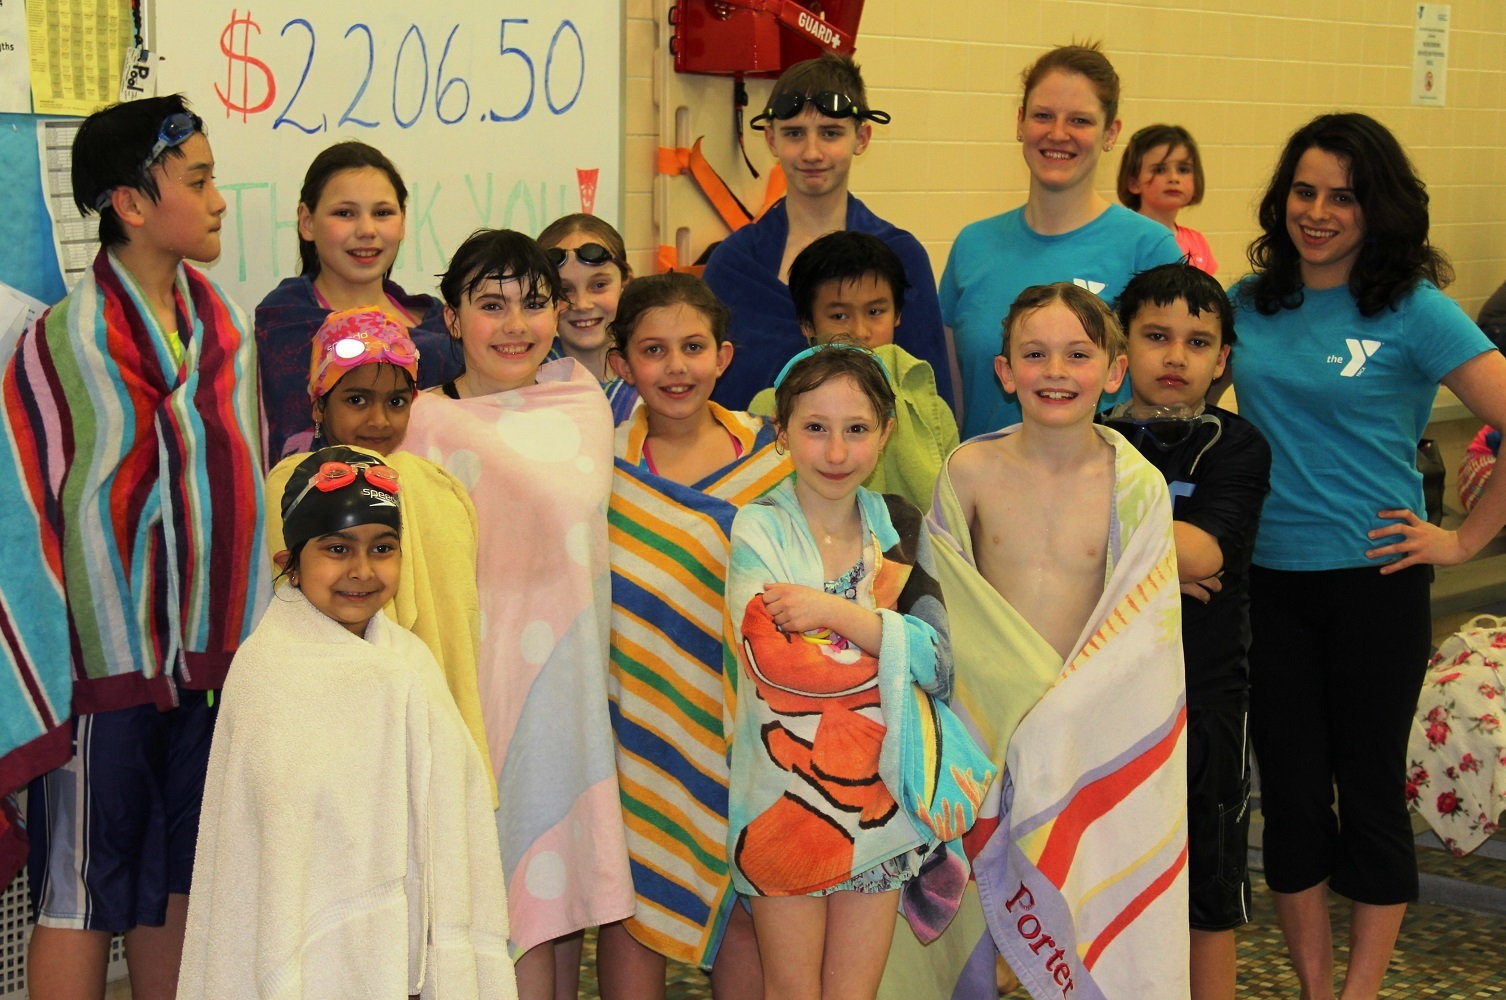 ecacdfdcf940685fa16d_Kids__swimathon_Post_event.JPG